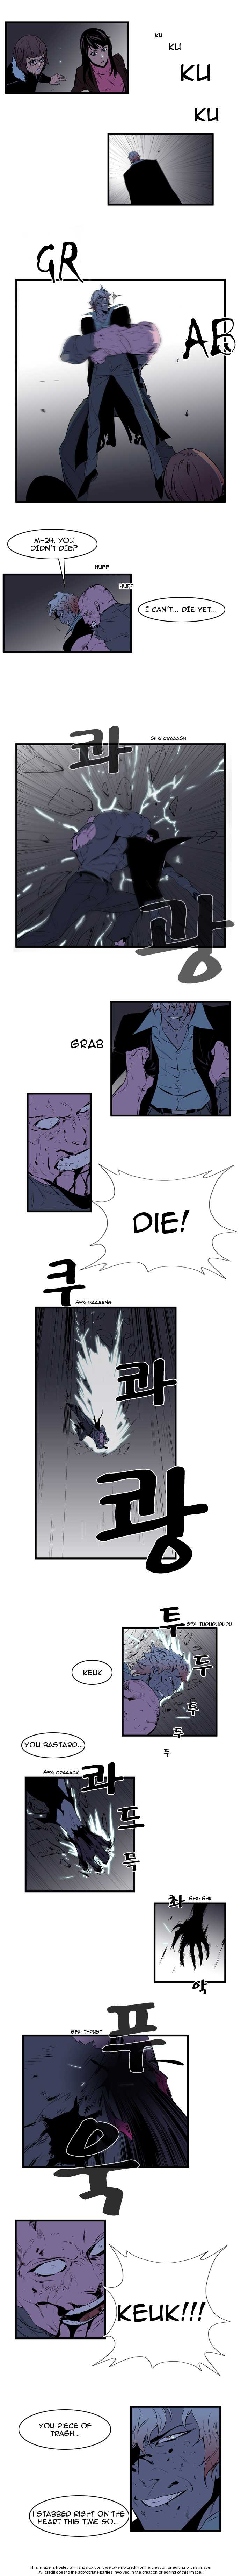 Noblesse 75 Page 2